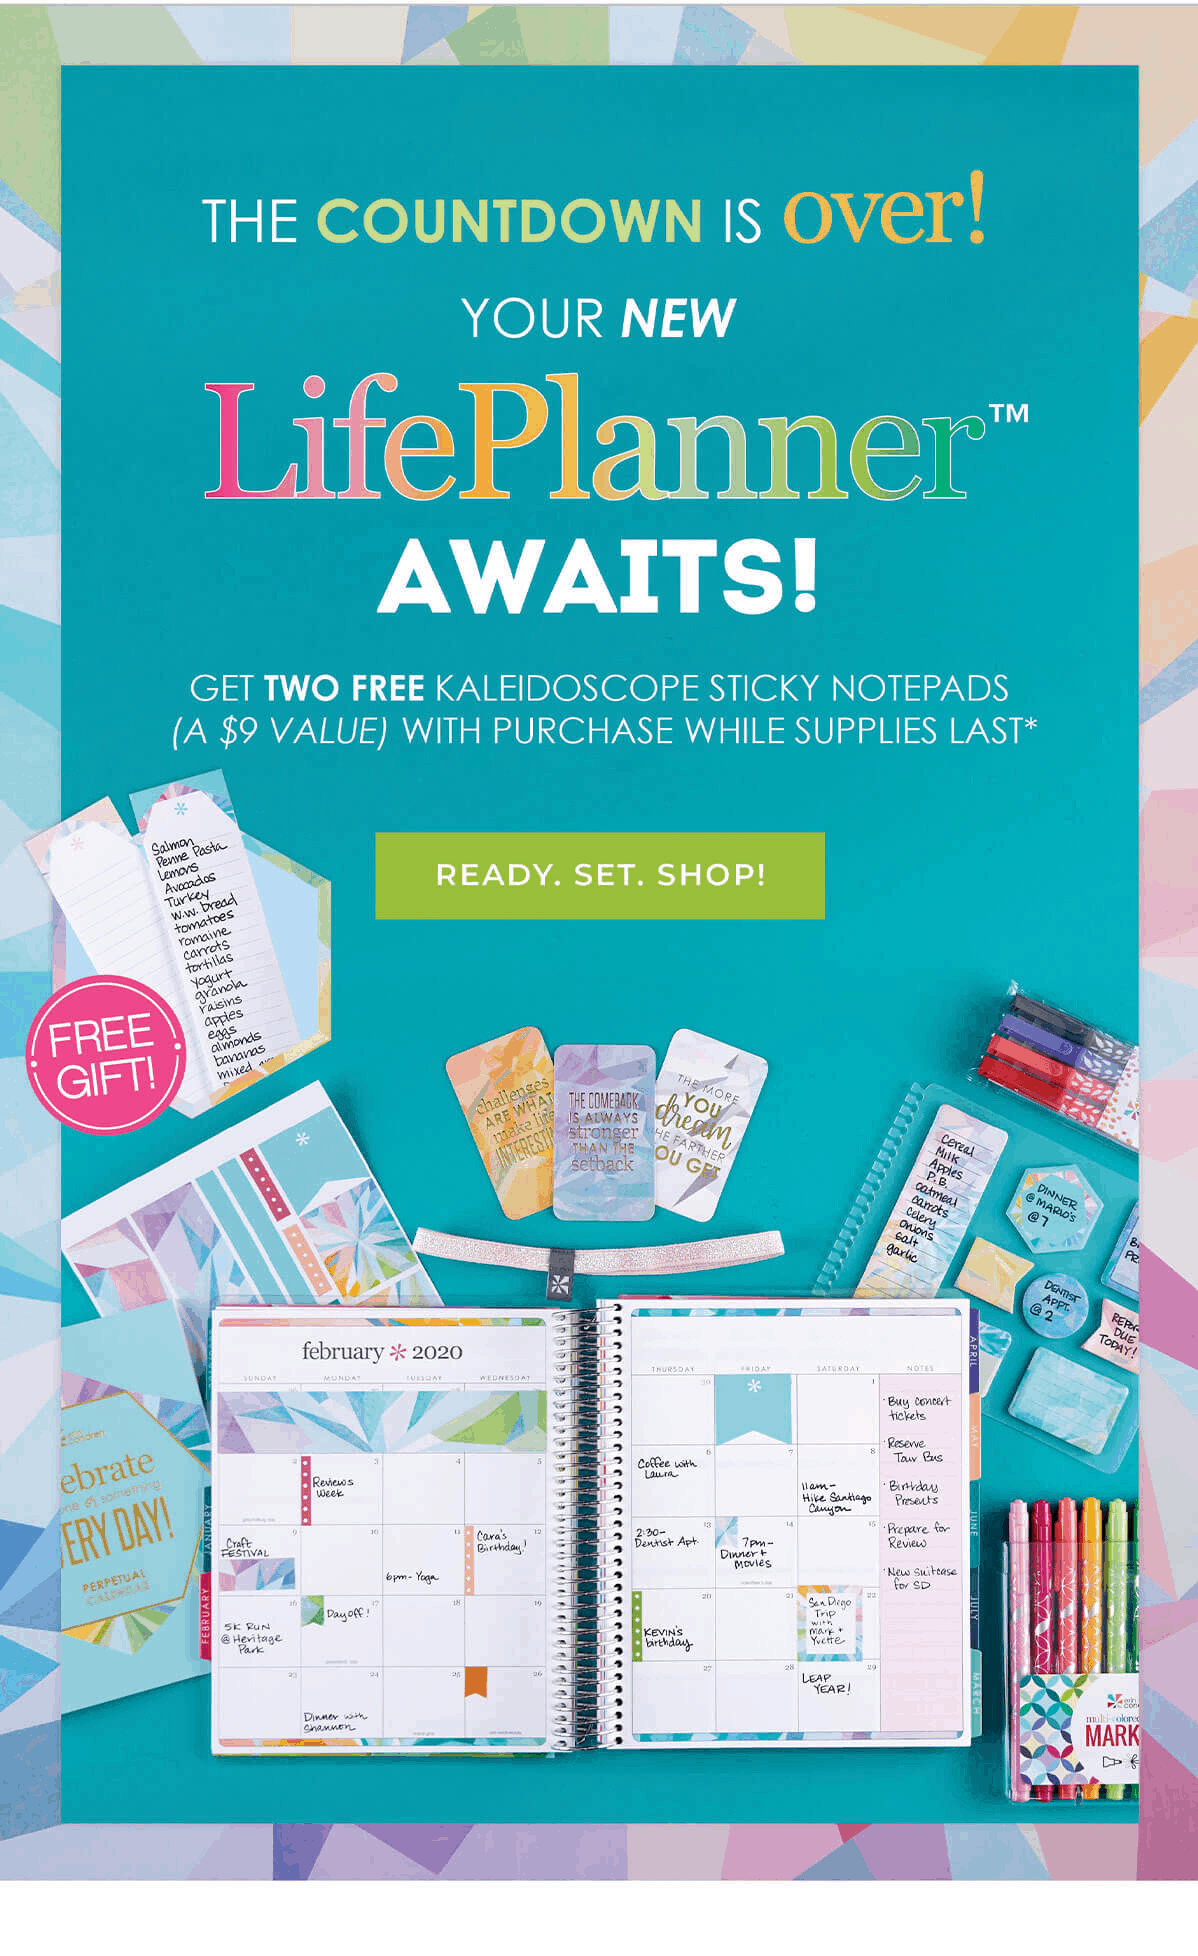 Best Mens Subscription Boxes 2020 Erin Condren 2019 2020 Coiled LifePlanners Available Now + Coupon